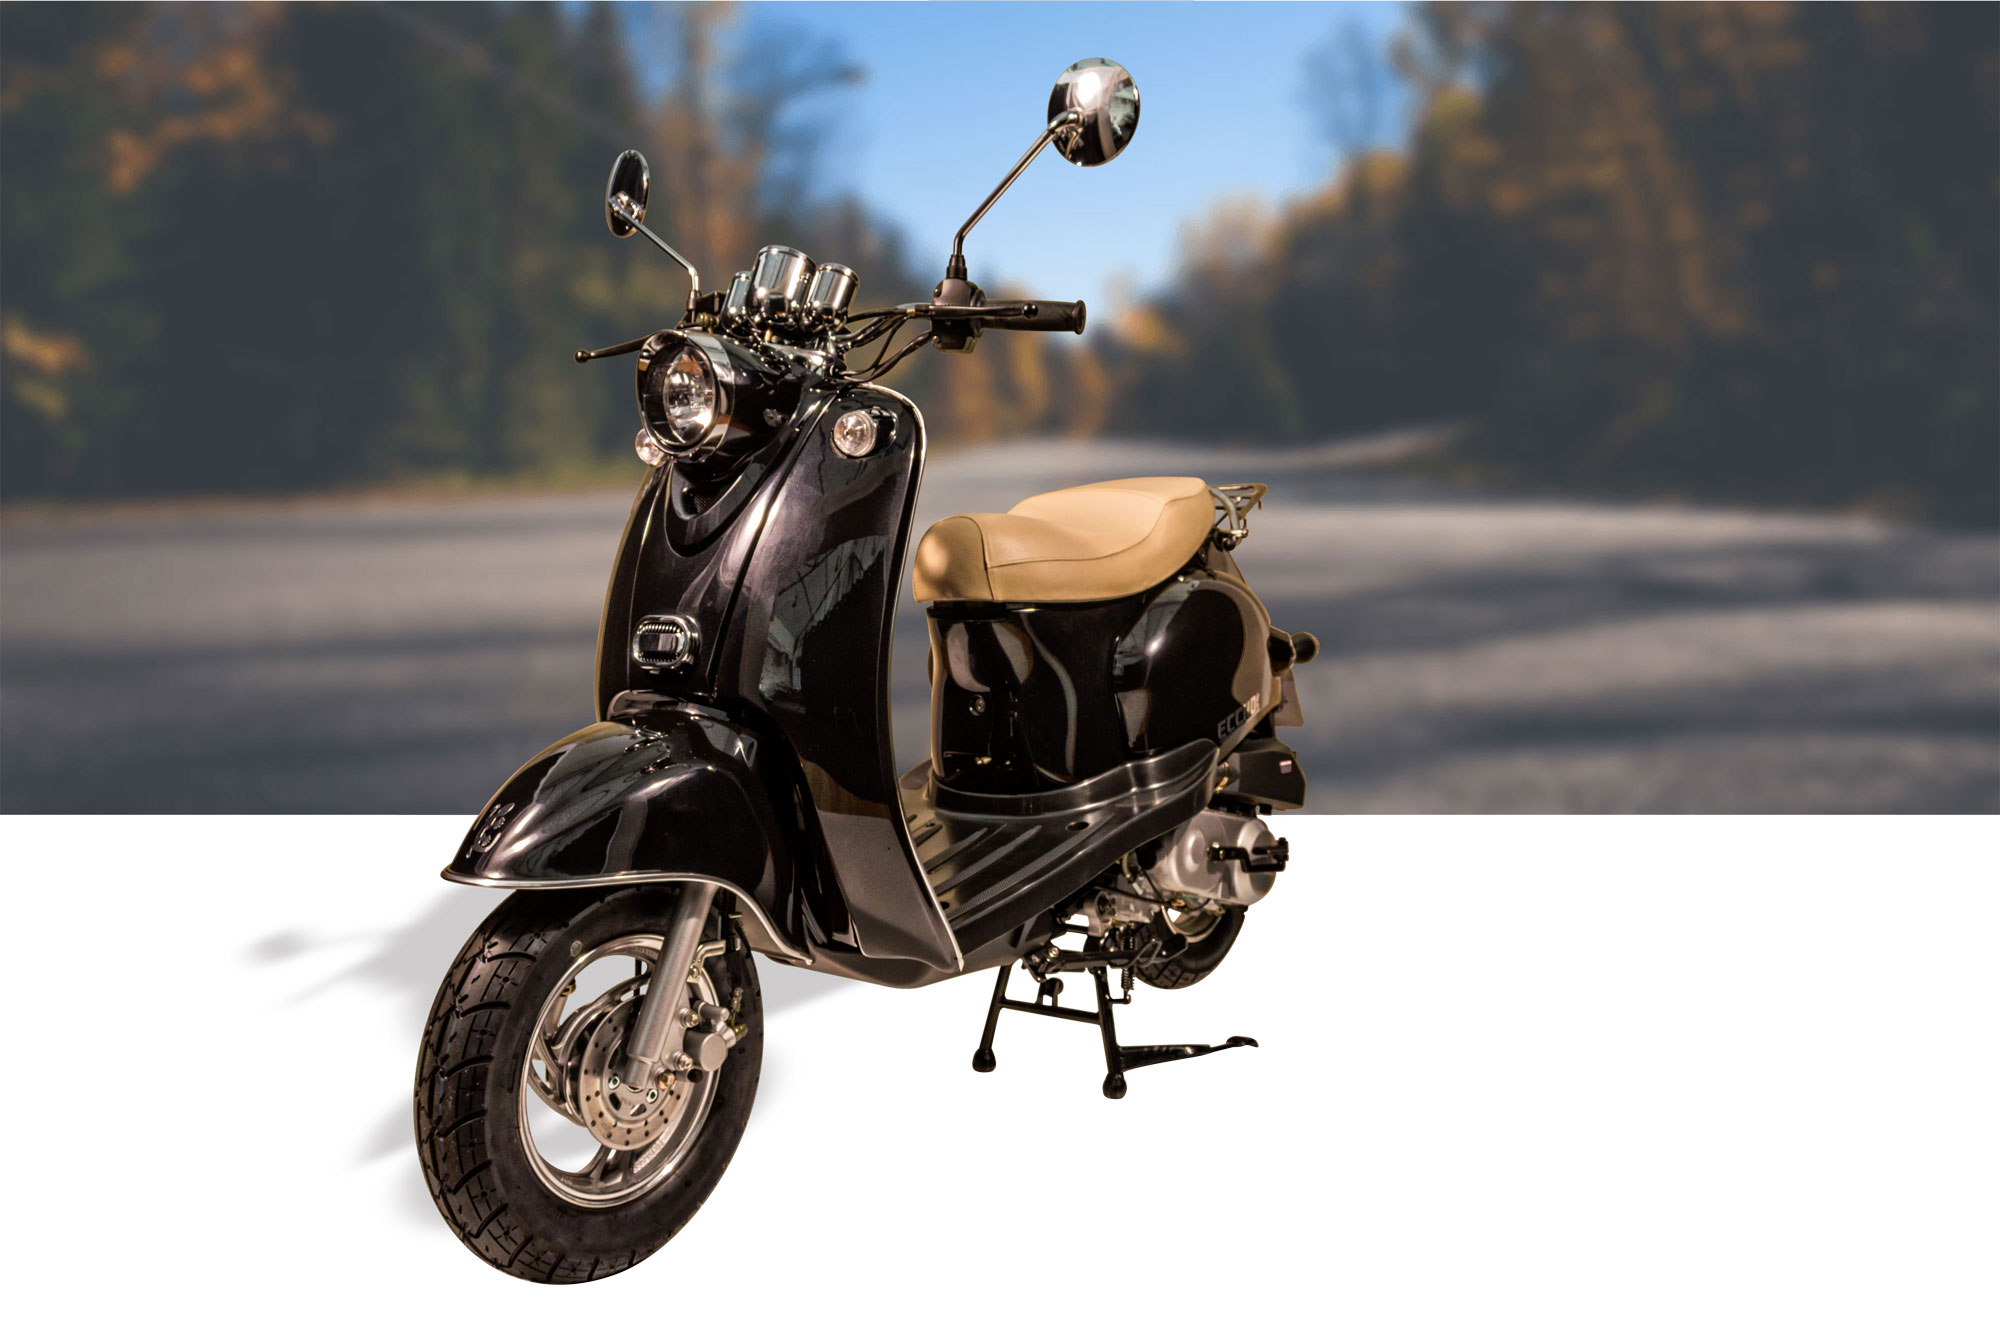 SCOOTER-50-ECCHO-RETRO-II-EFI-10